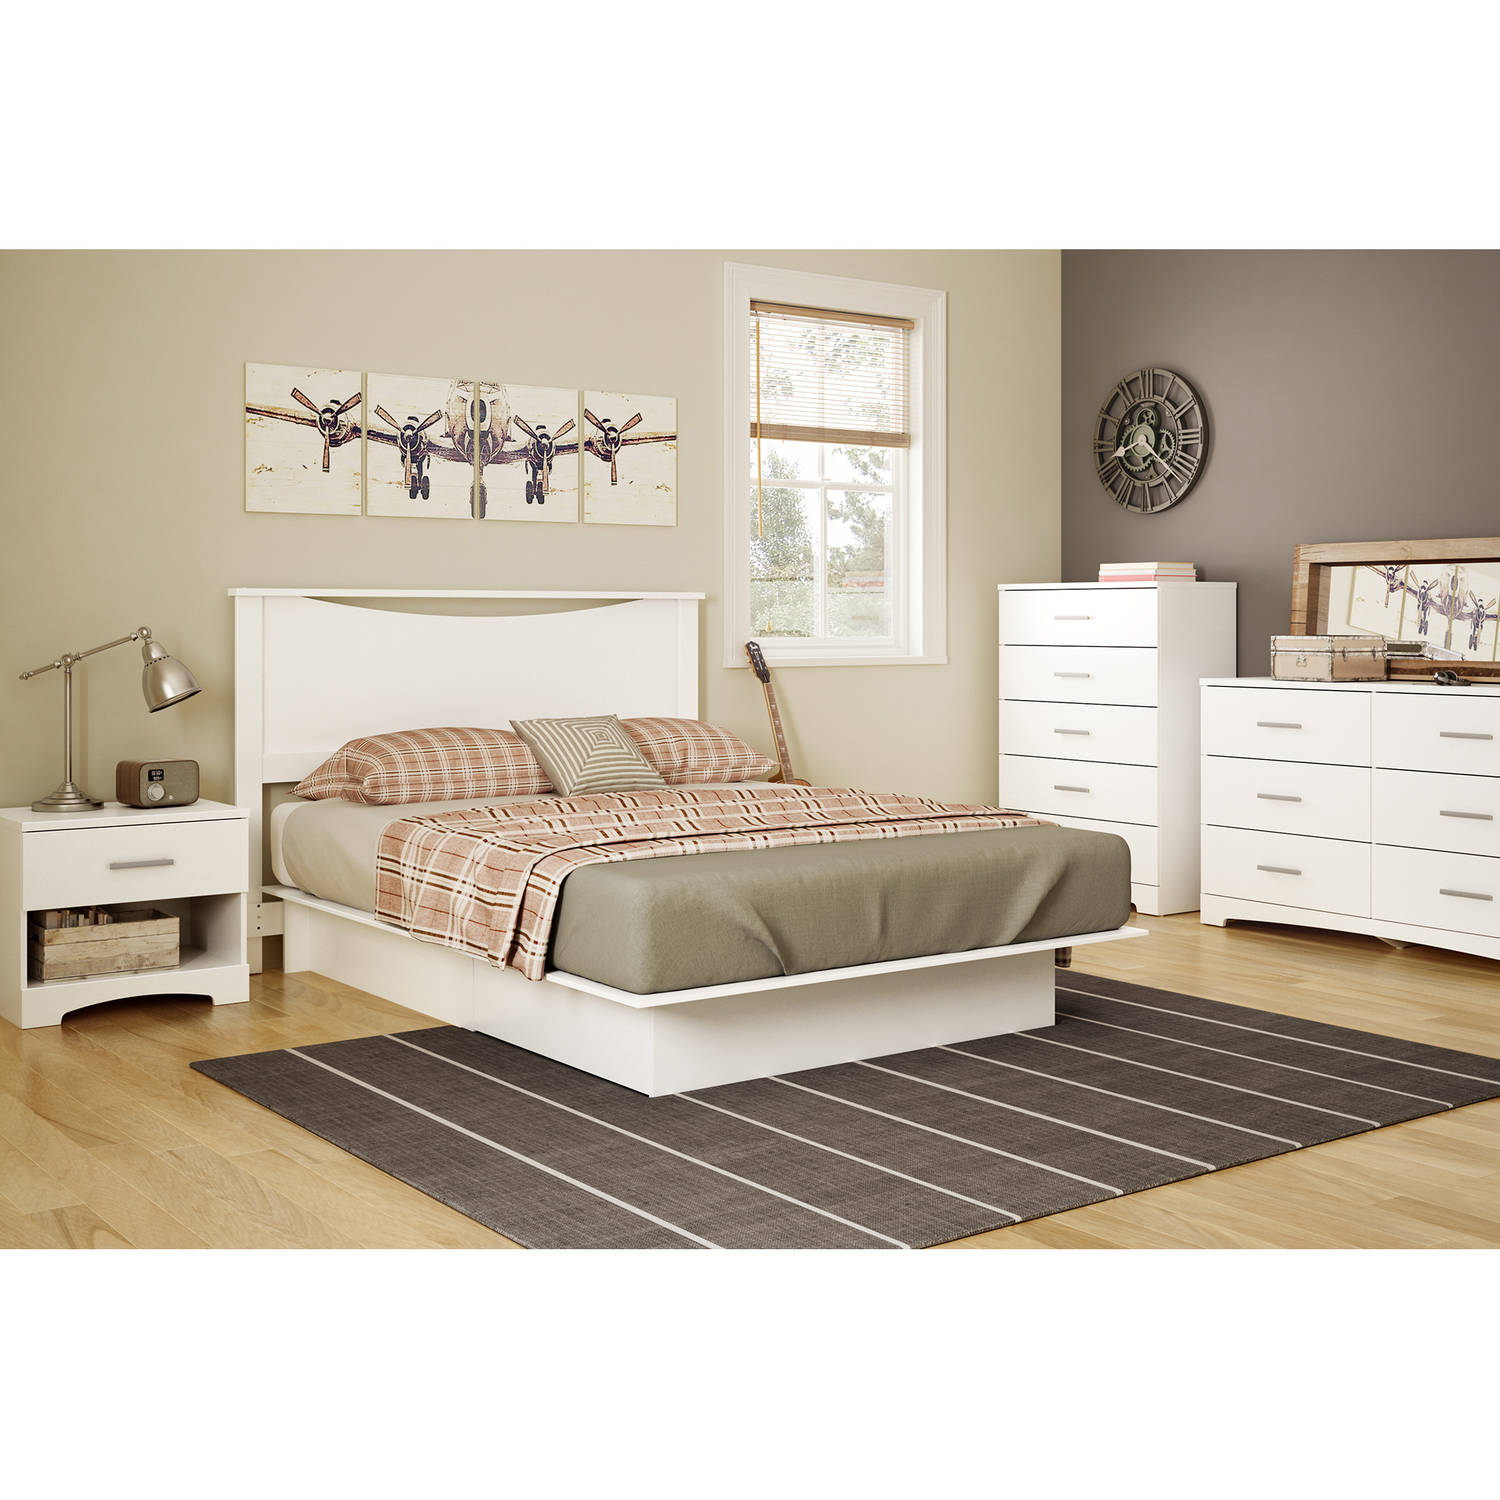 White platform bed full queen size with drawers bedroom furniture storage new ebay for Bedroom set with storage drawers